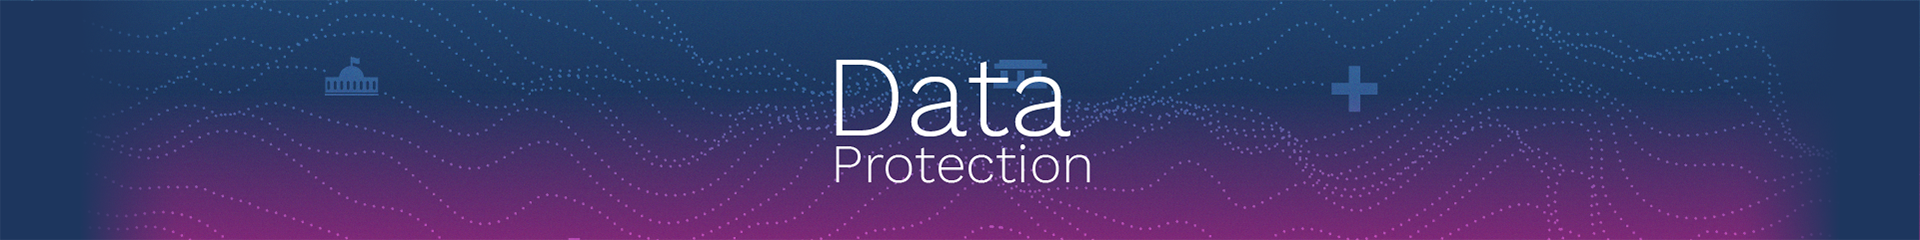 Data Protection Page 3 Digital Guardian